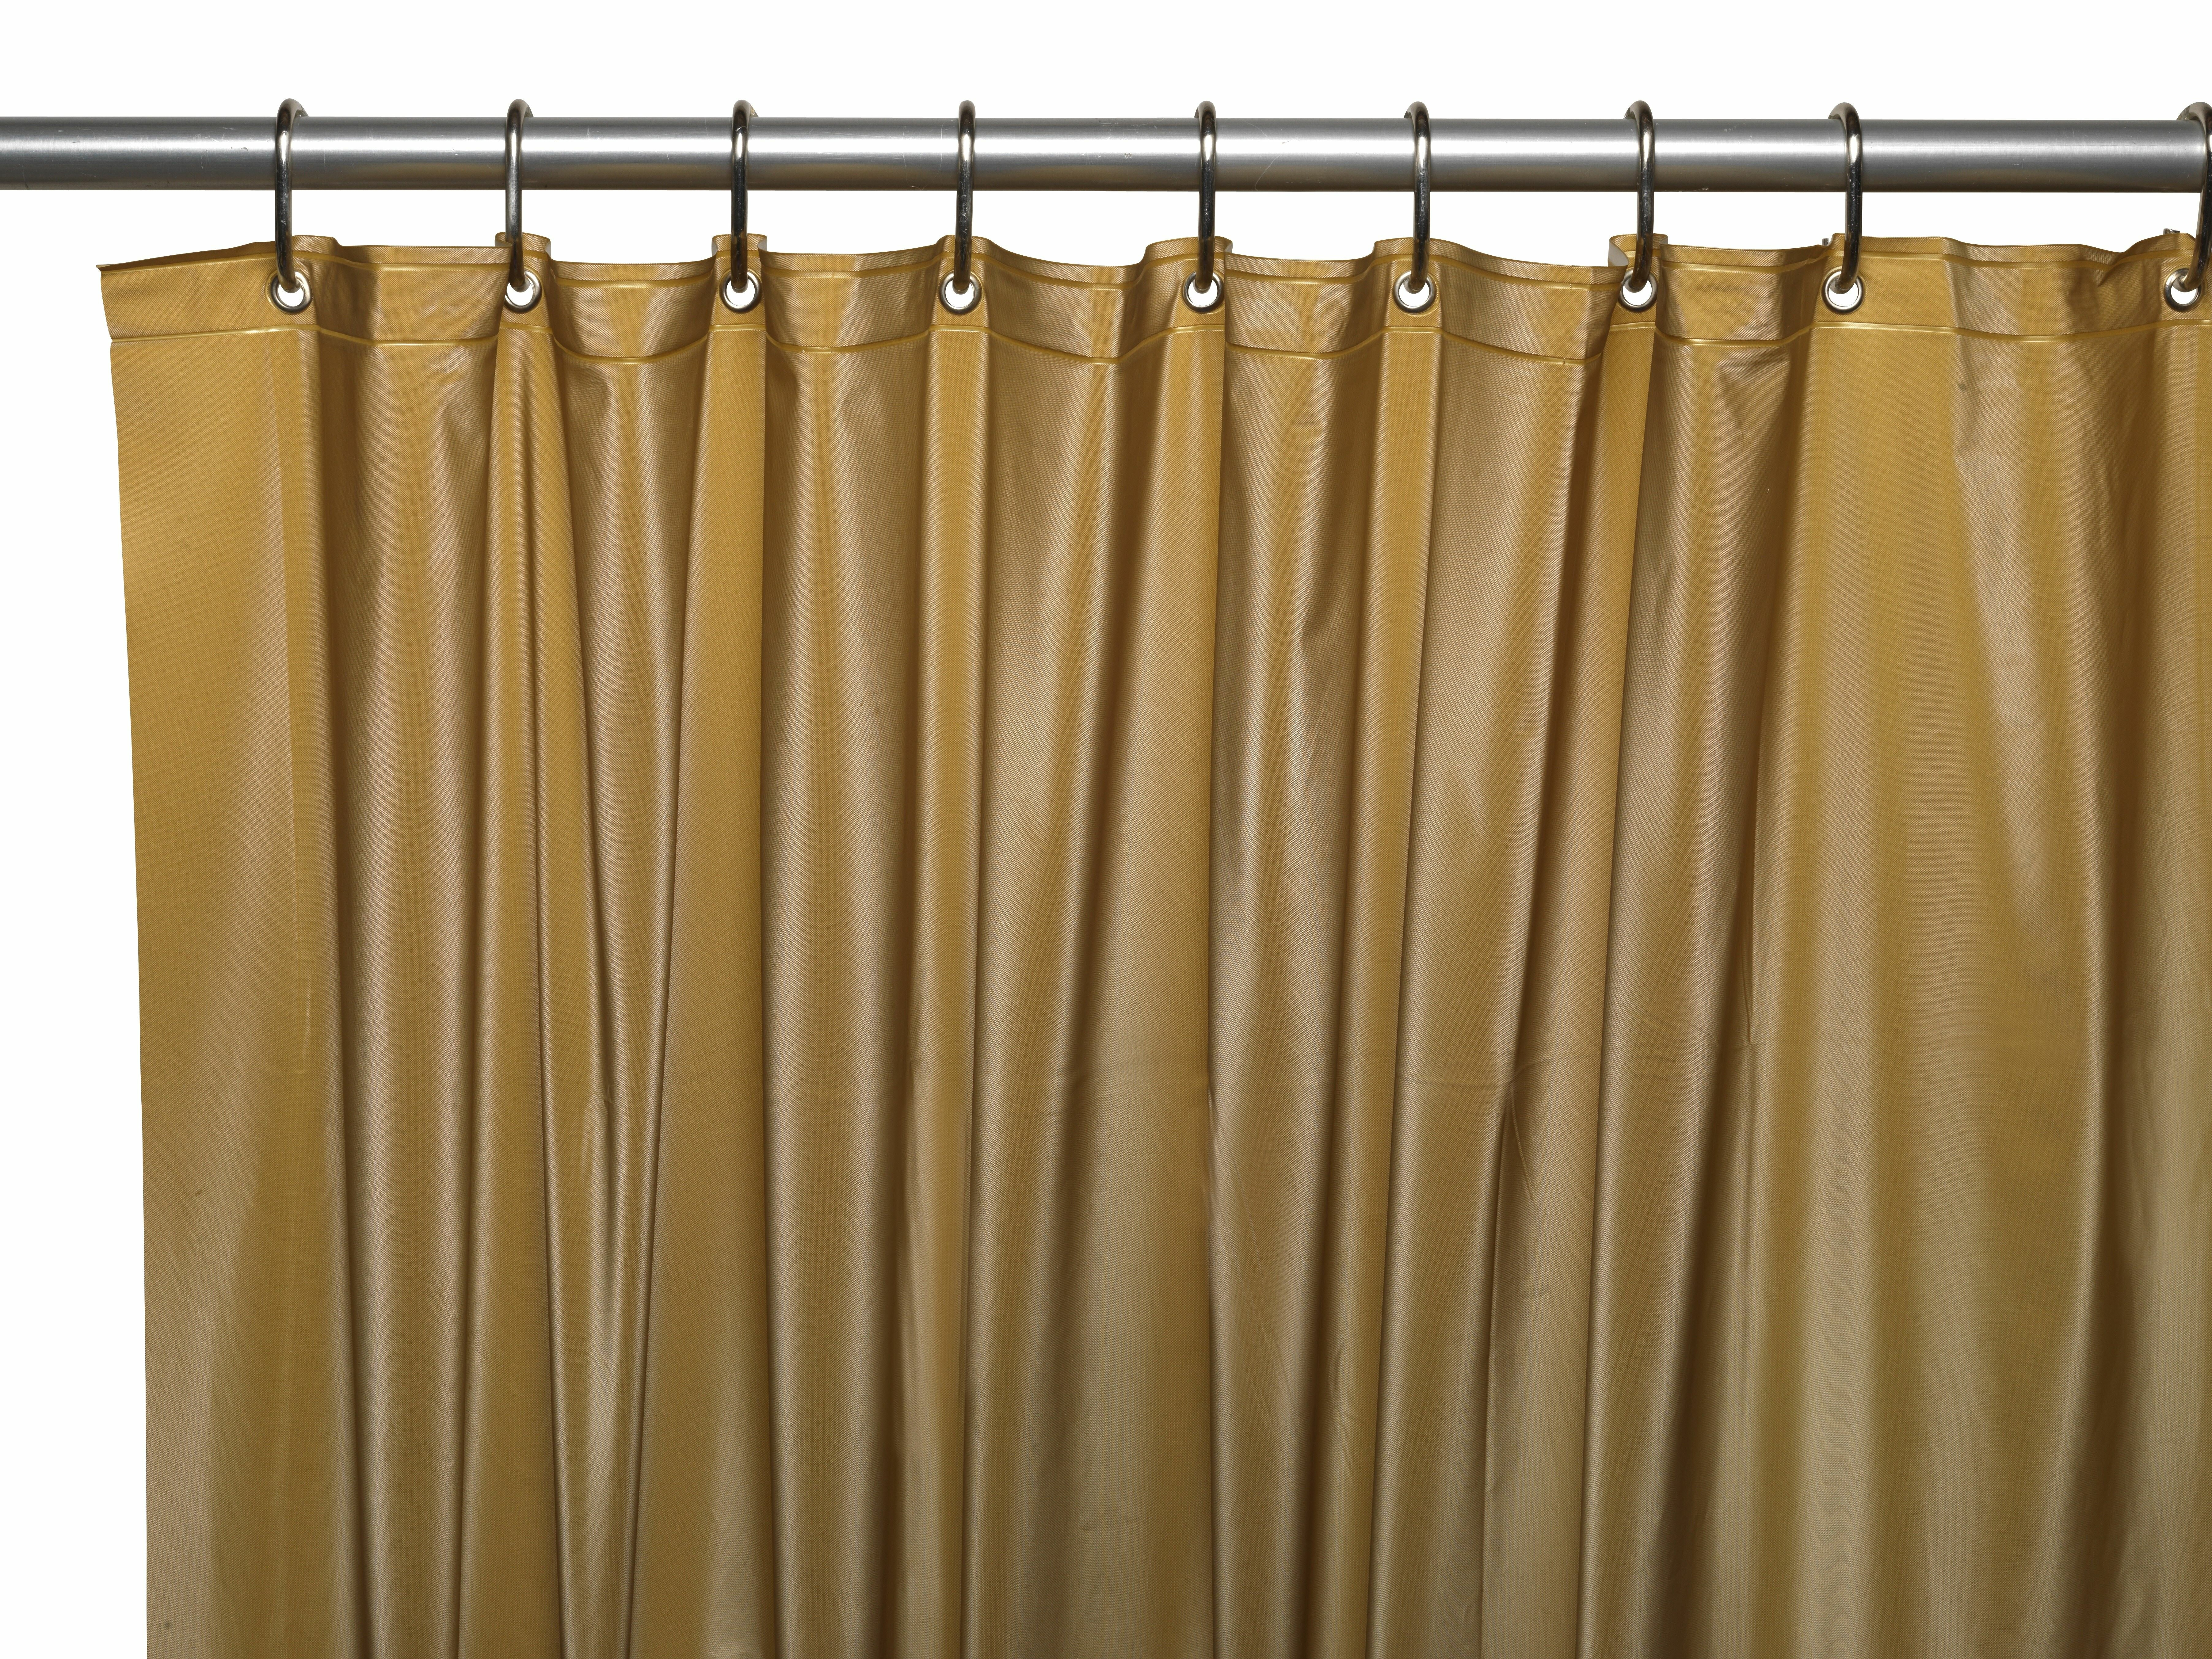 Ben And Jonah Hotel 8 Gauge Vinyl Shower Curtain Liner With Weighted Magnets Metal Grommets